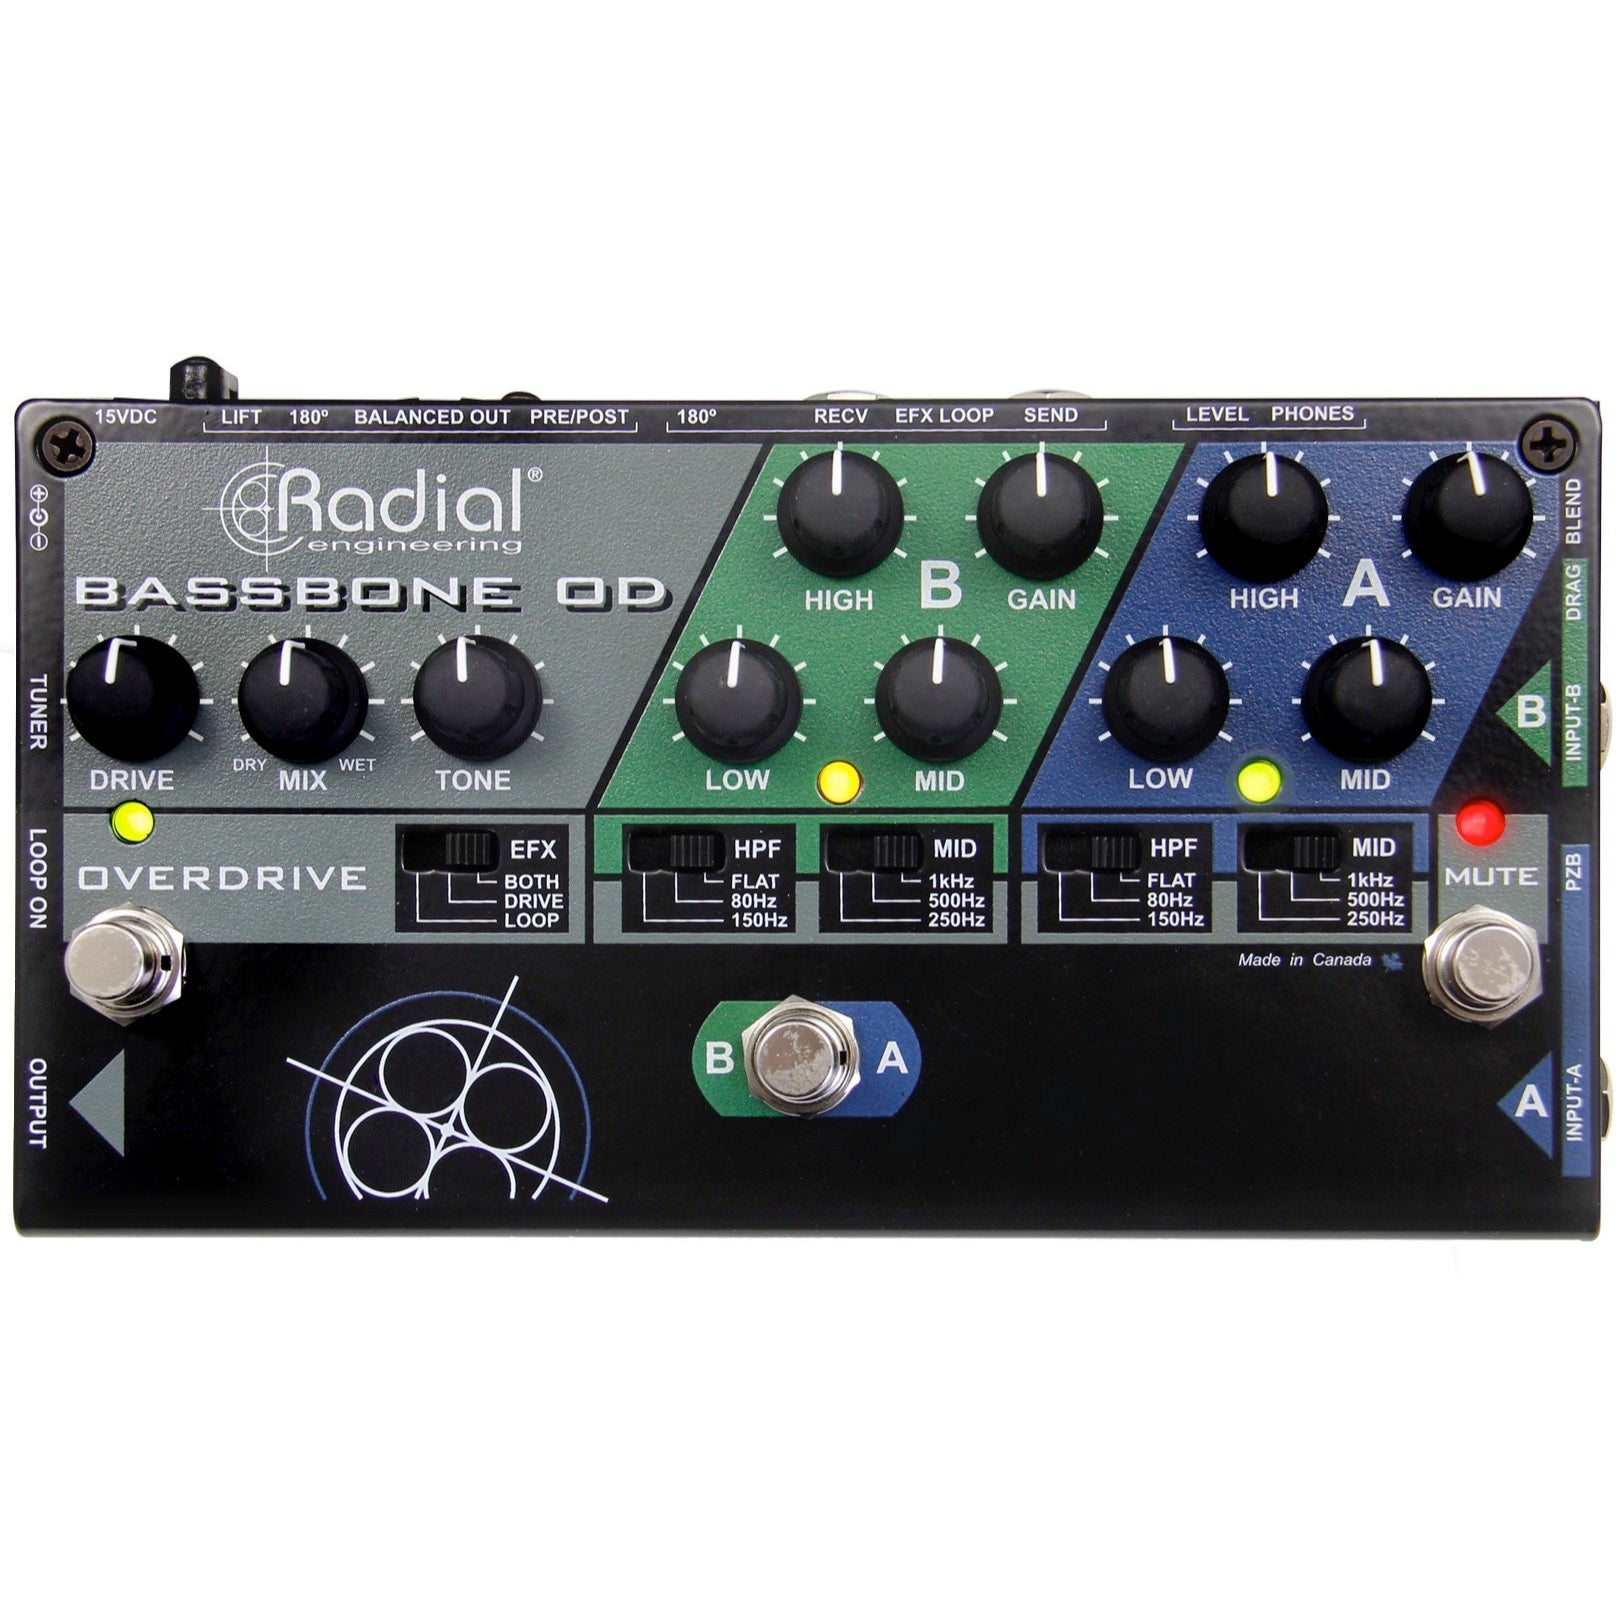 Radial BassBone OD Bass Preamp and DI Pedal